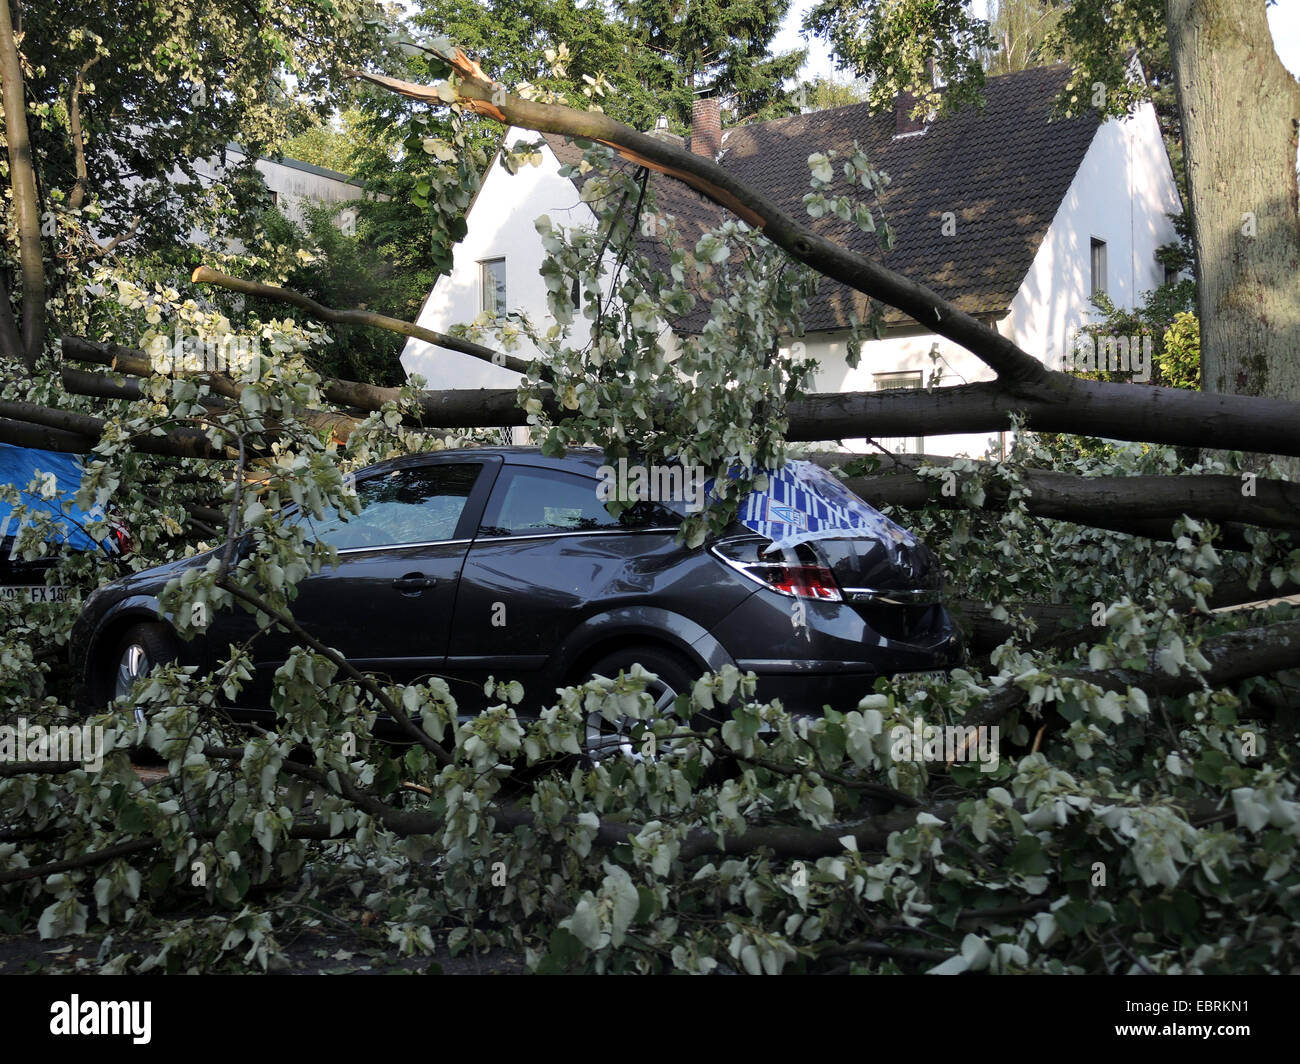 tree fallen on a parked car, damages by storm front Ela at 2014-06-09, Germany, North Rhine-Westphalia, Ruhr Area, - Stock Image